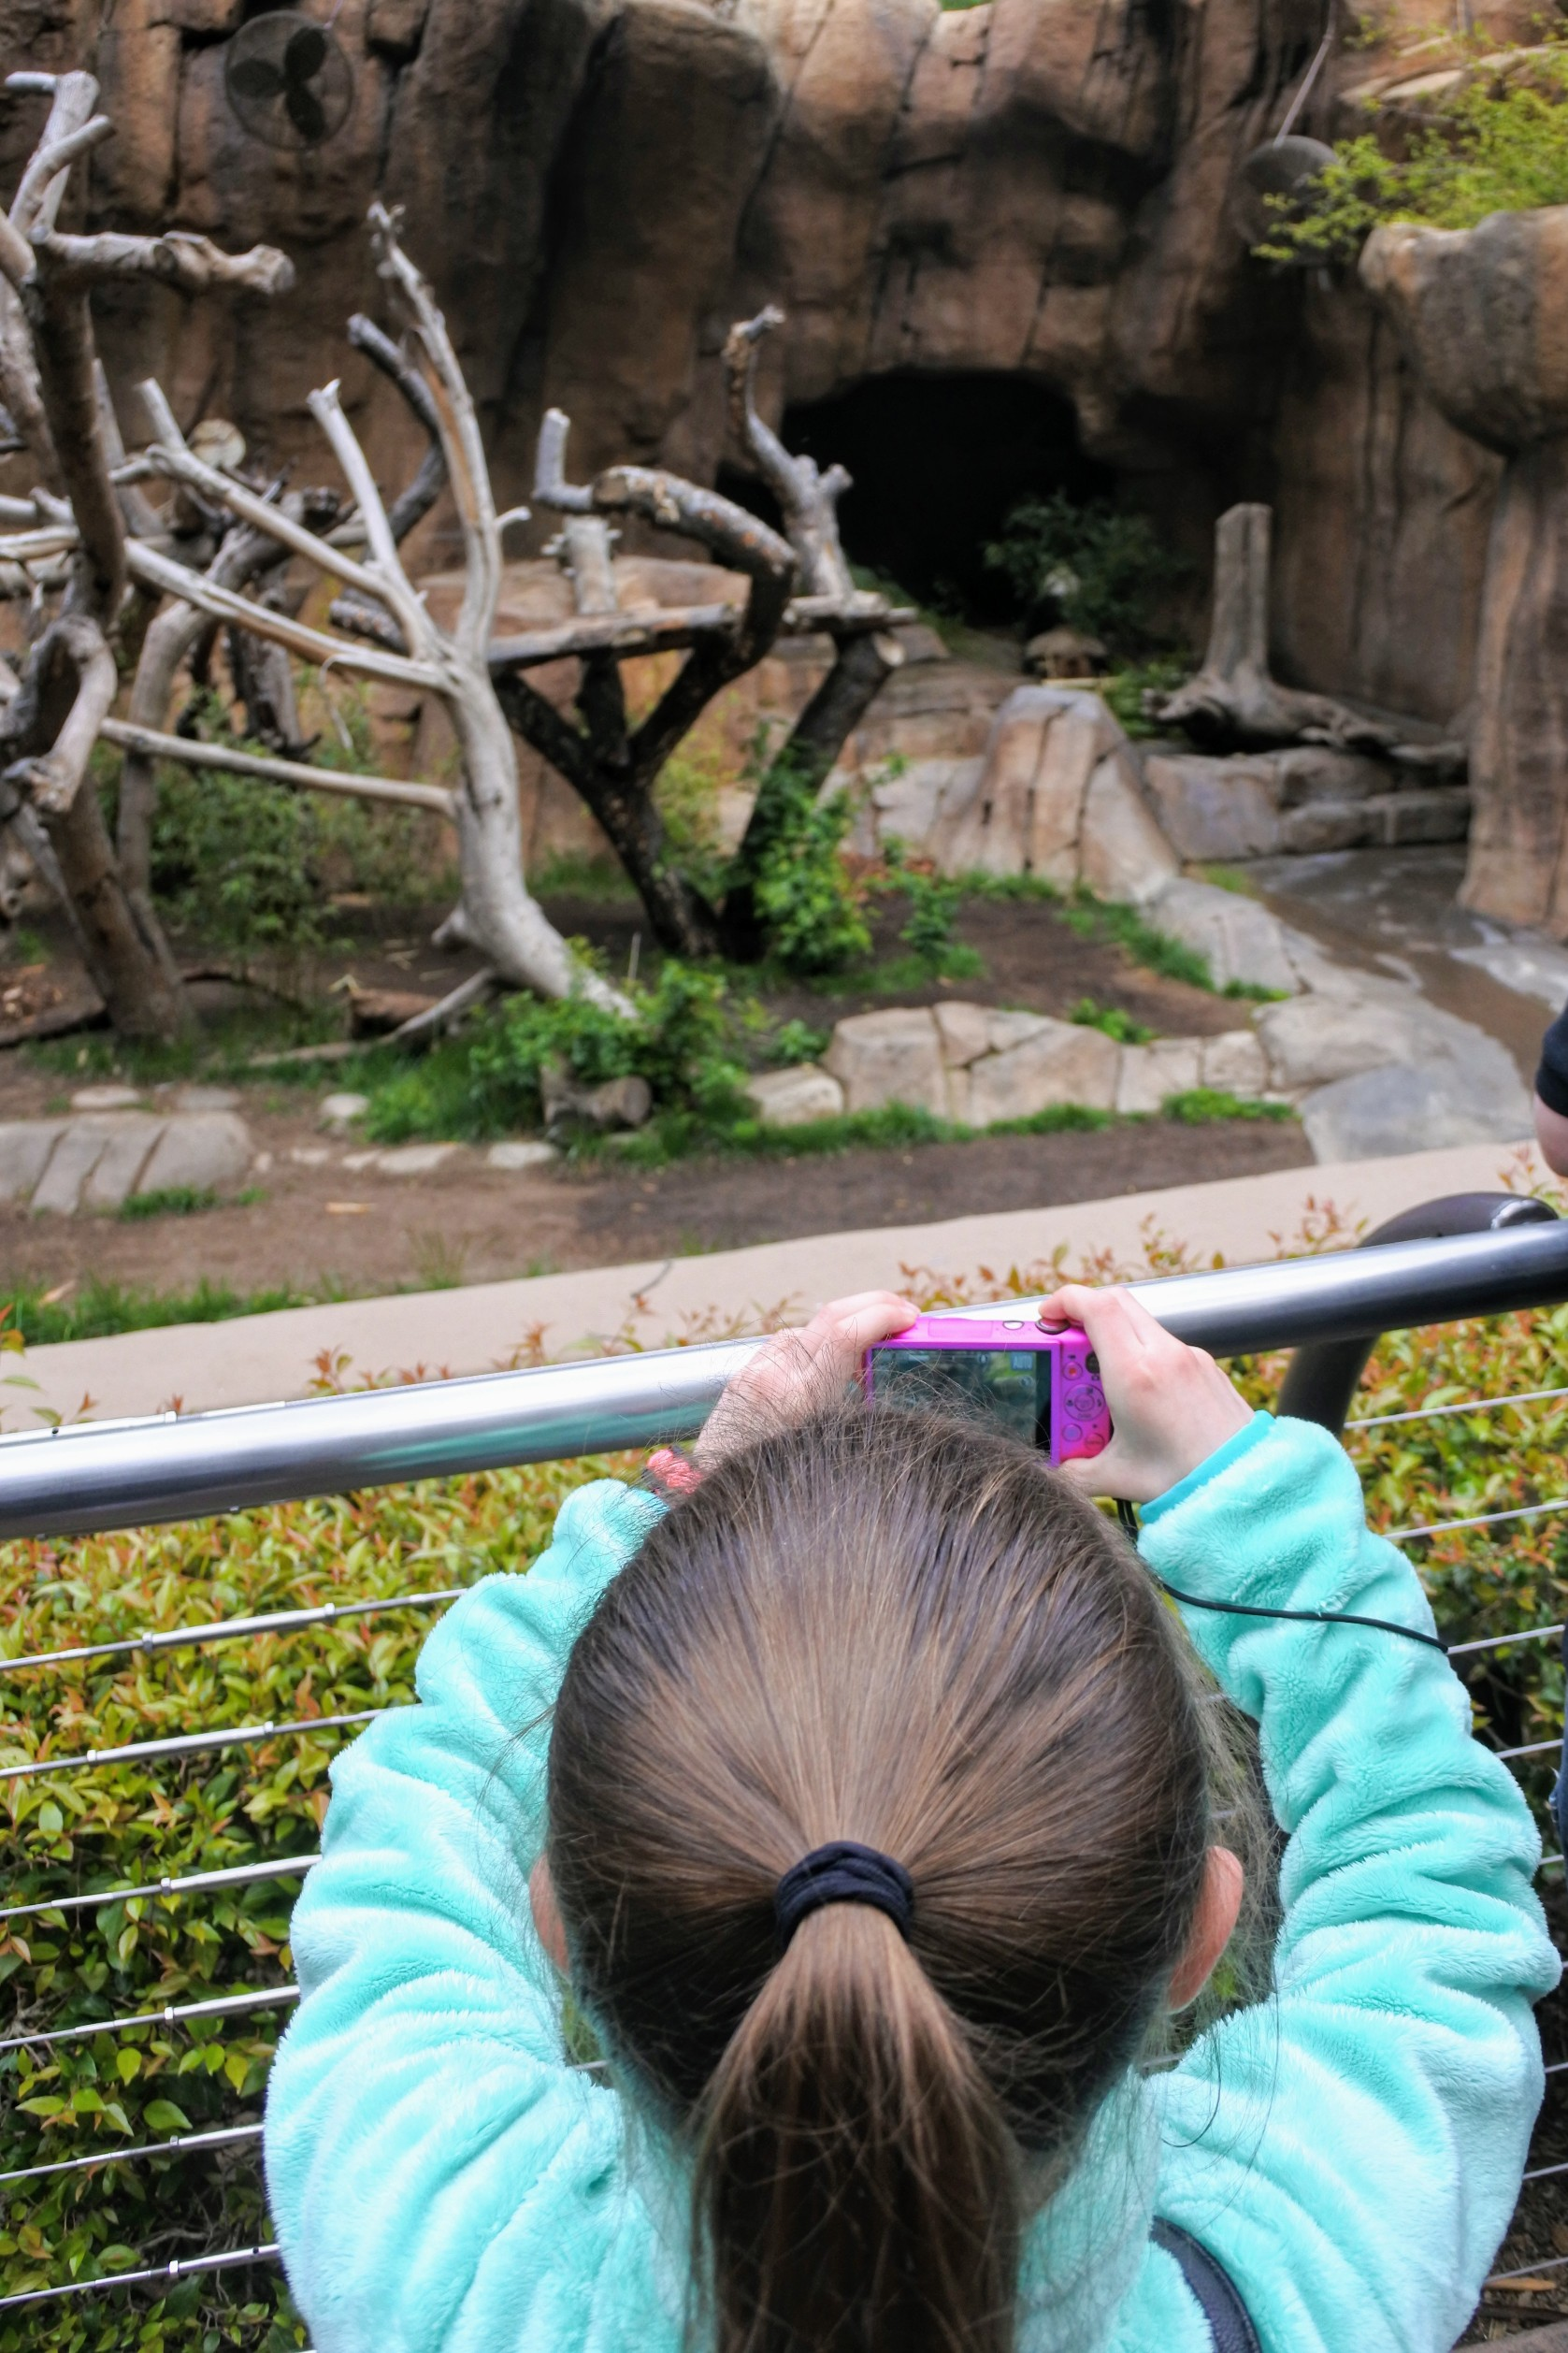 Are you thinking about skipping the famous San Diego Zoo because you are short on time? Don't! Find out how to do it all (well, almost all) in half a day when you visit the San Diego Zoo.